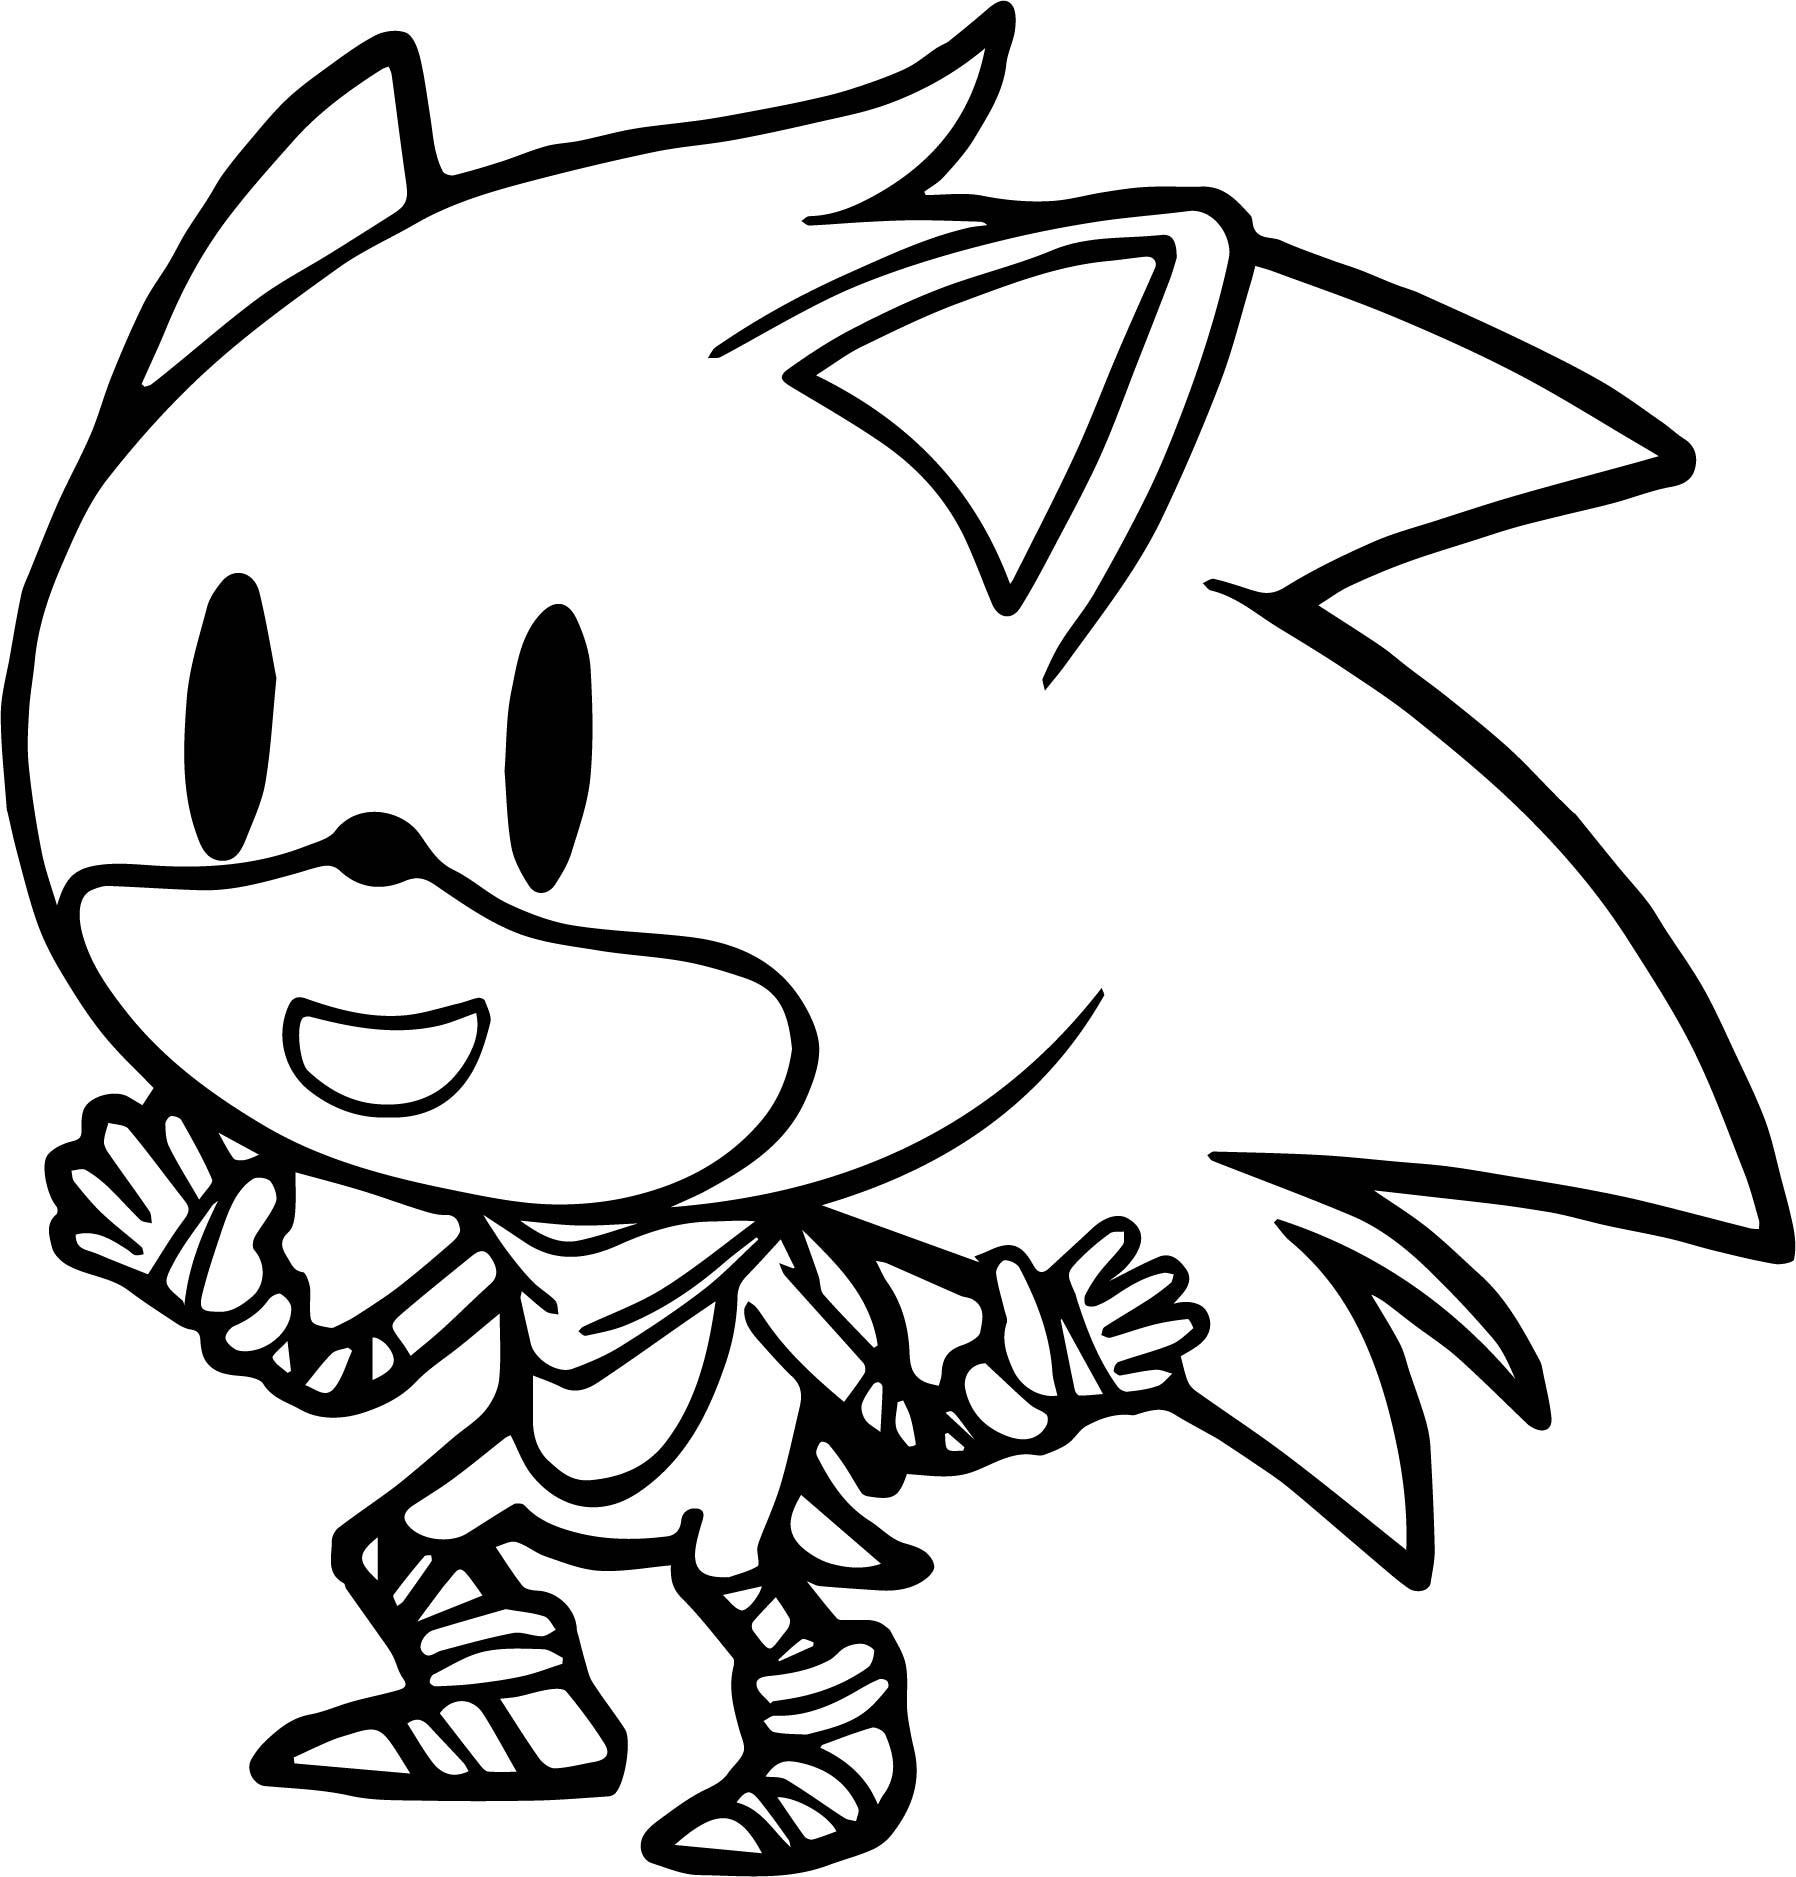 Sonic The Hedgehog Coloring Page WeColoringPage 270